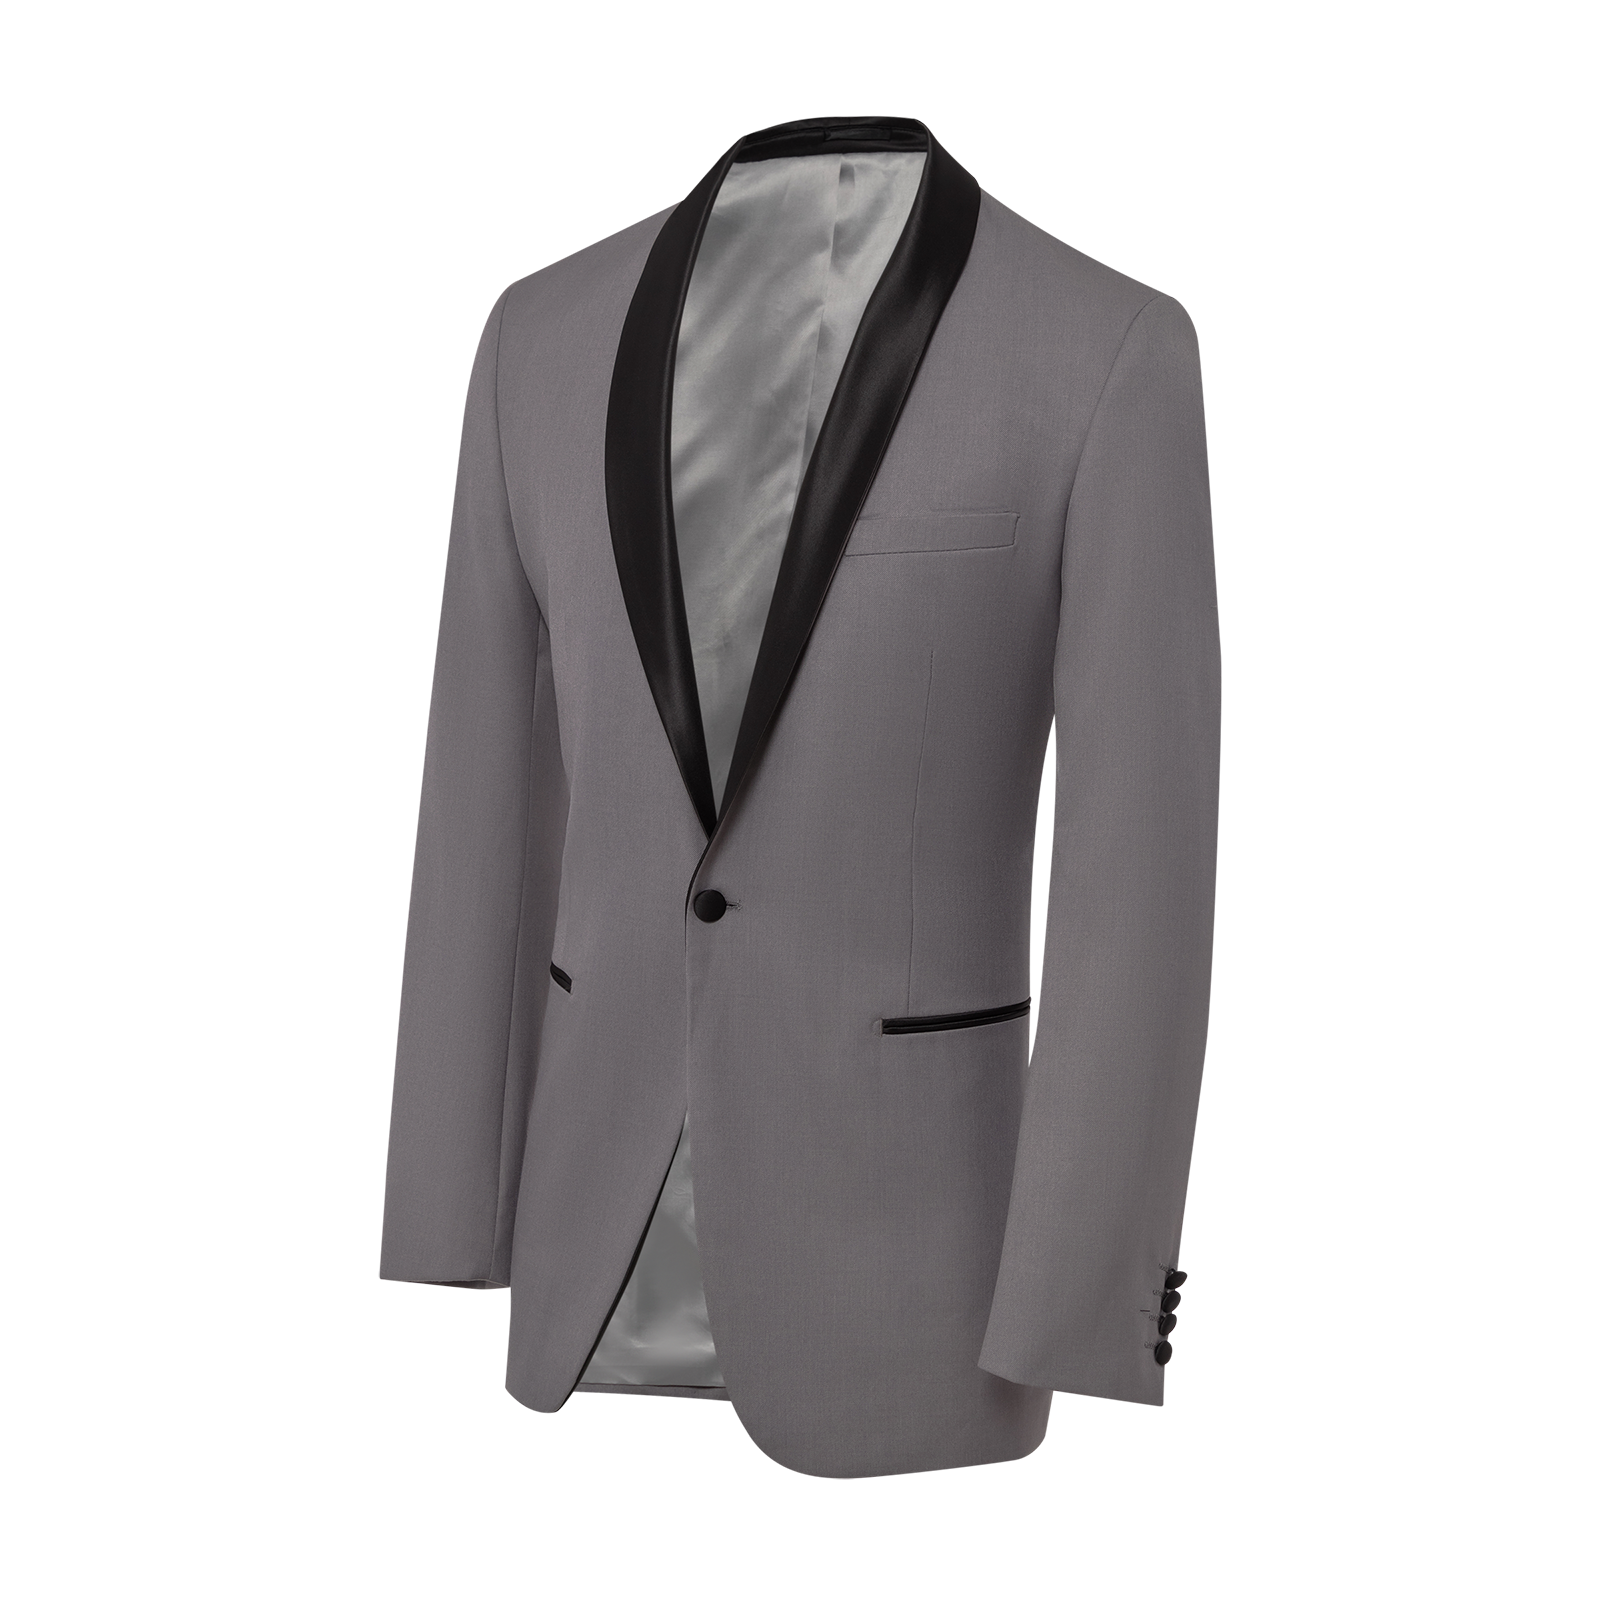 Ghost mannequin jacket product picture